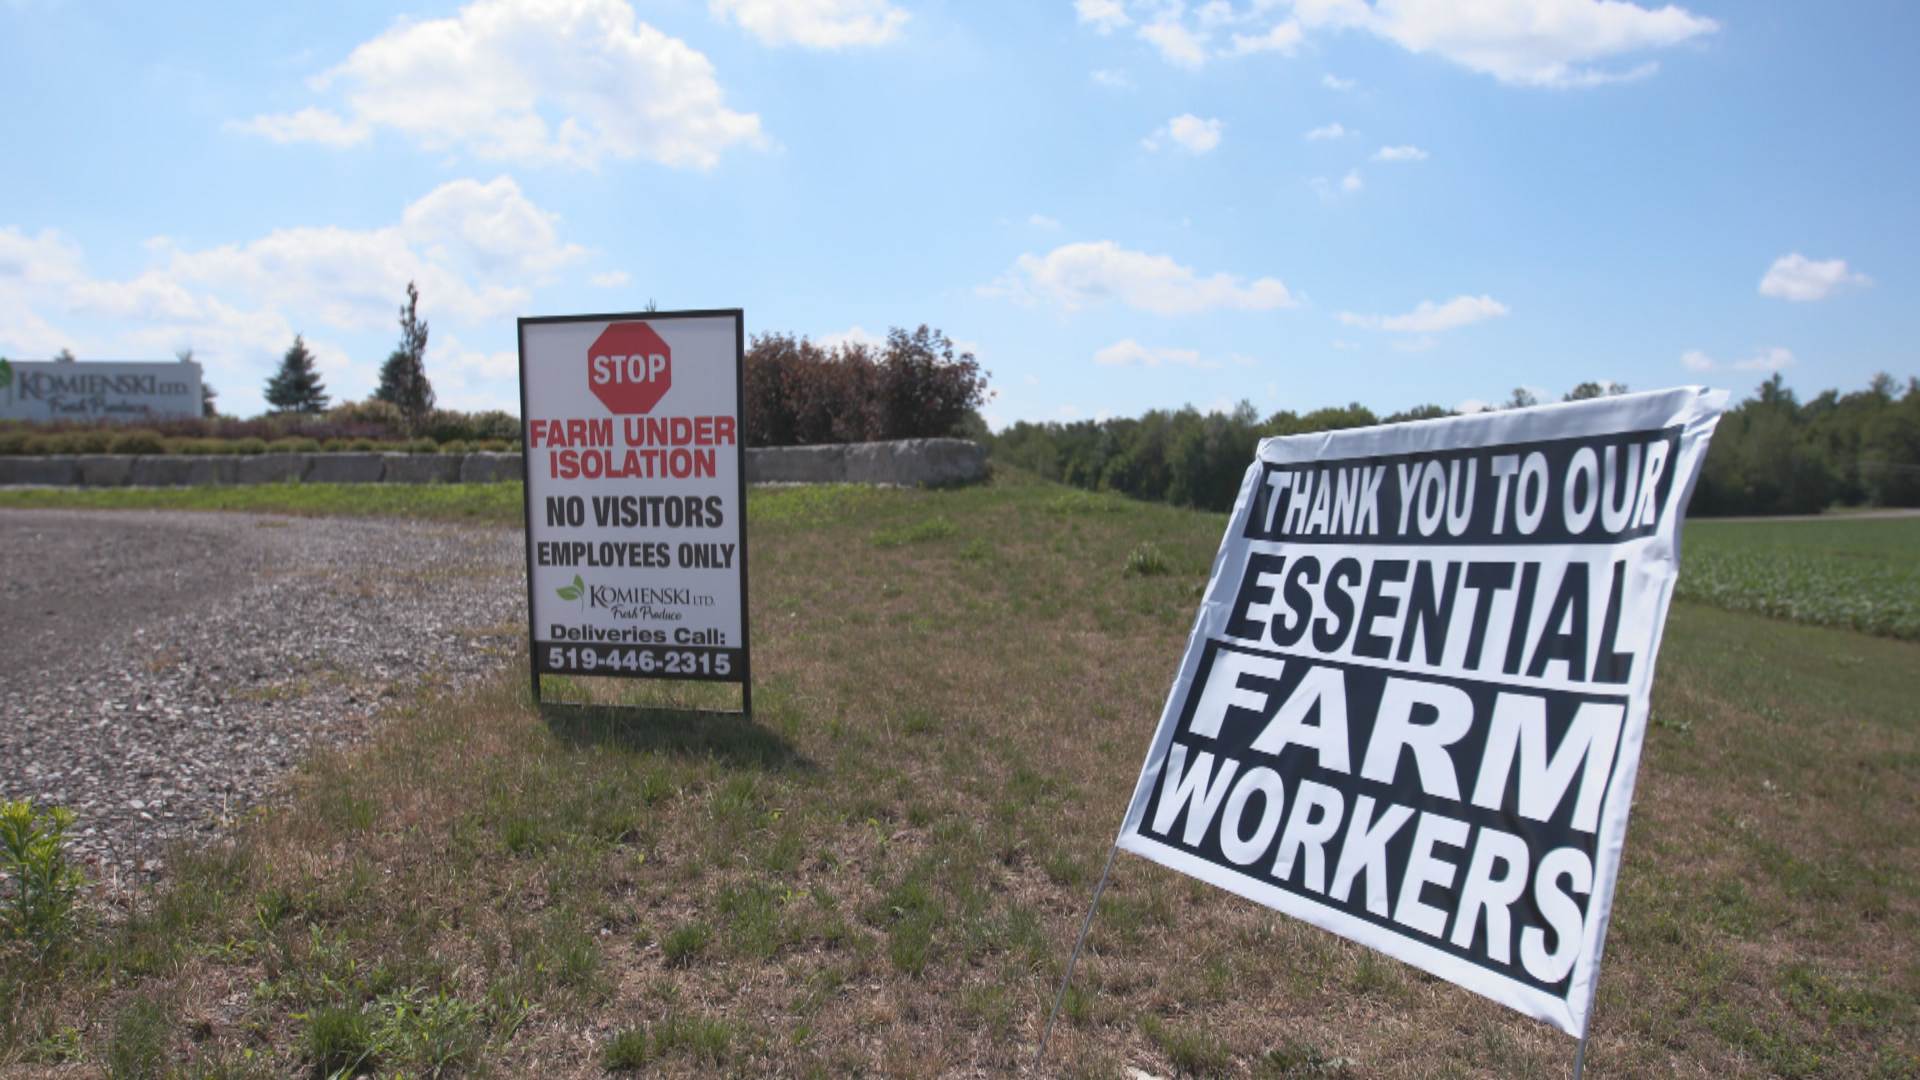 Workers at this Norfolk County farm were told not to leave the premises and threatened with termination and a $1-million fine if they did. (Andy Hincenbergs/CBC)